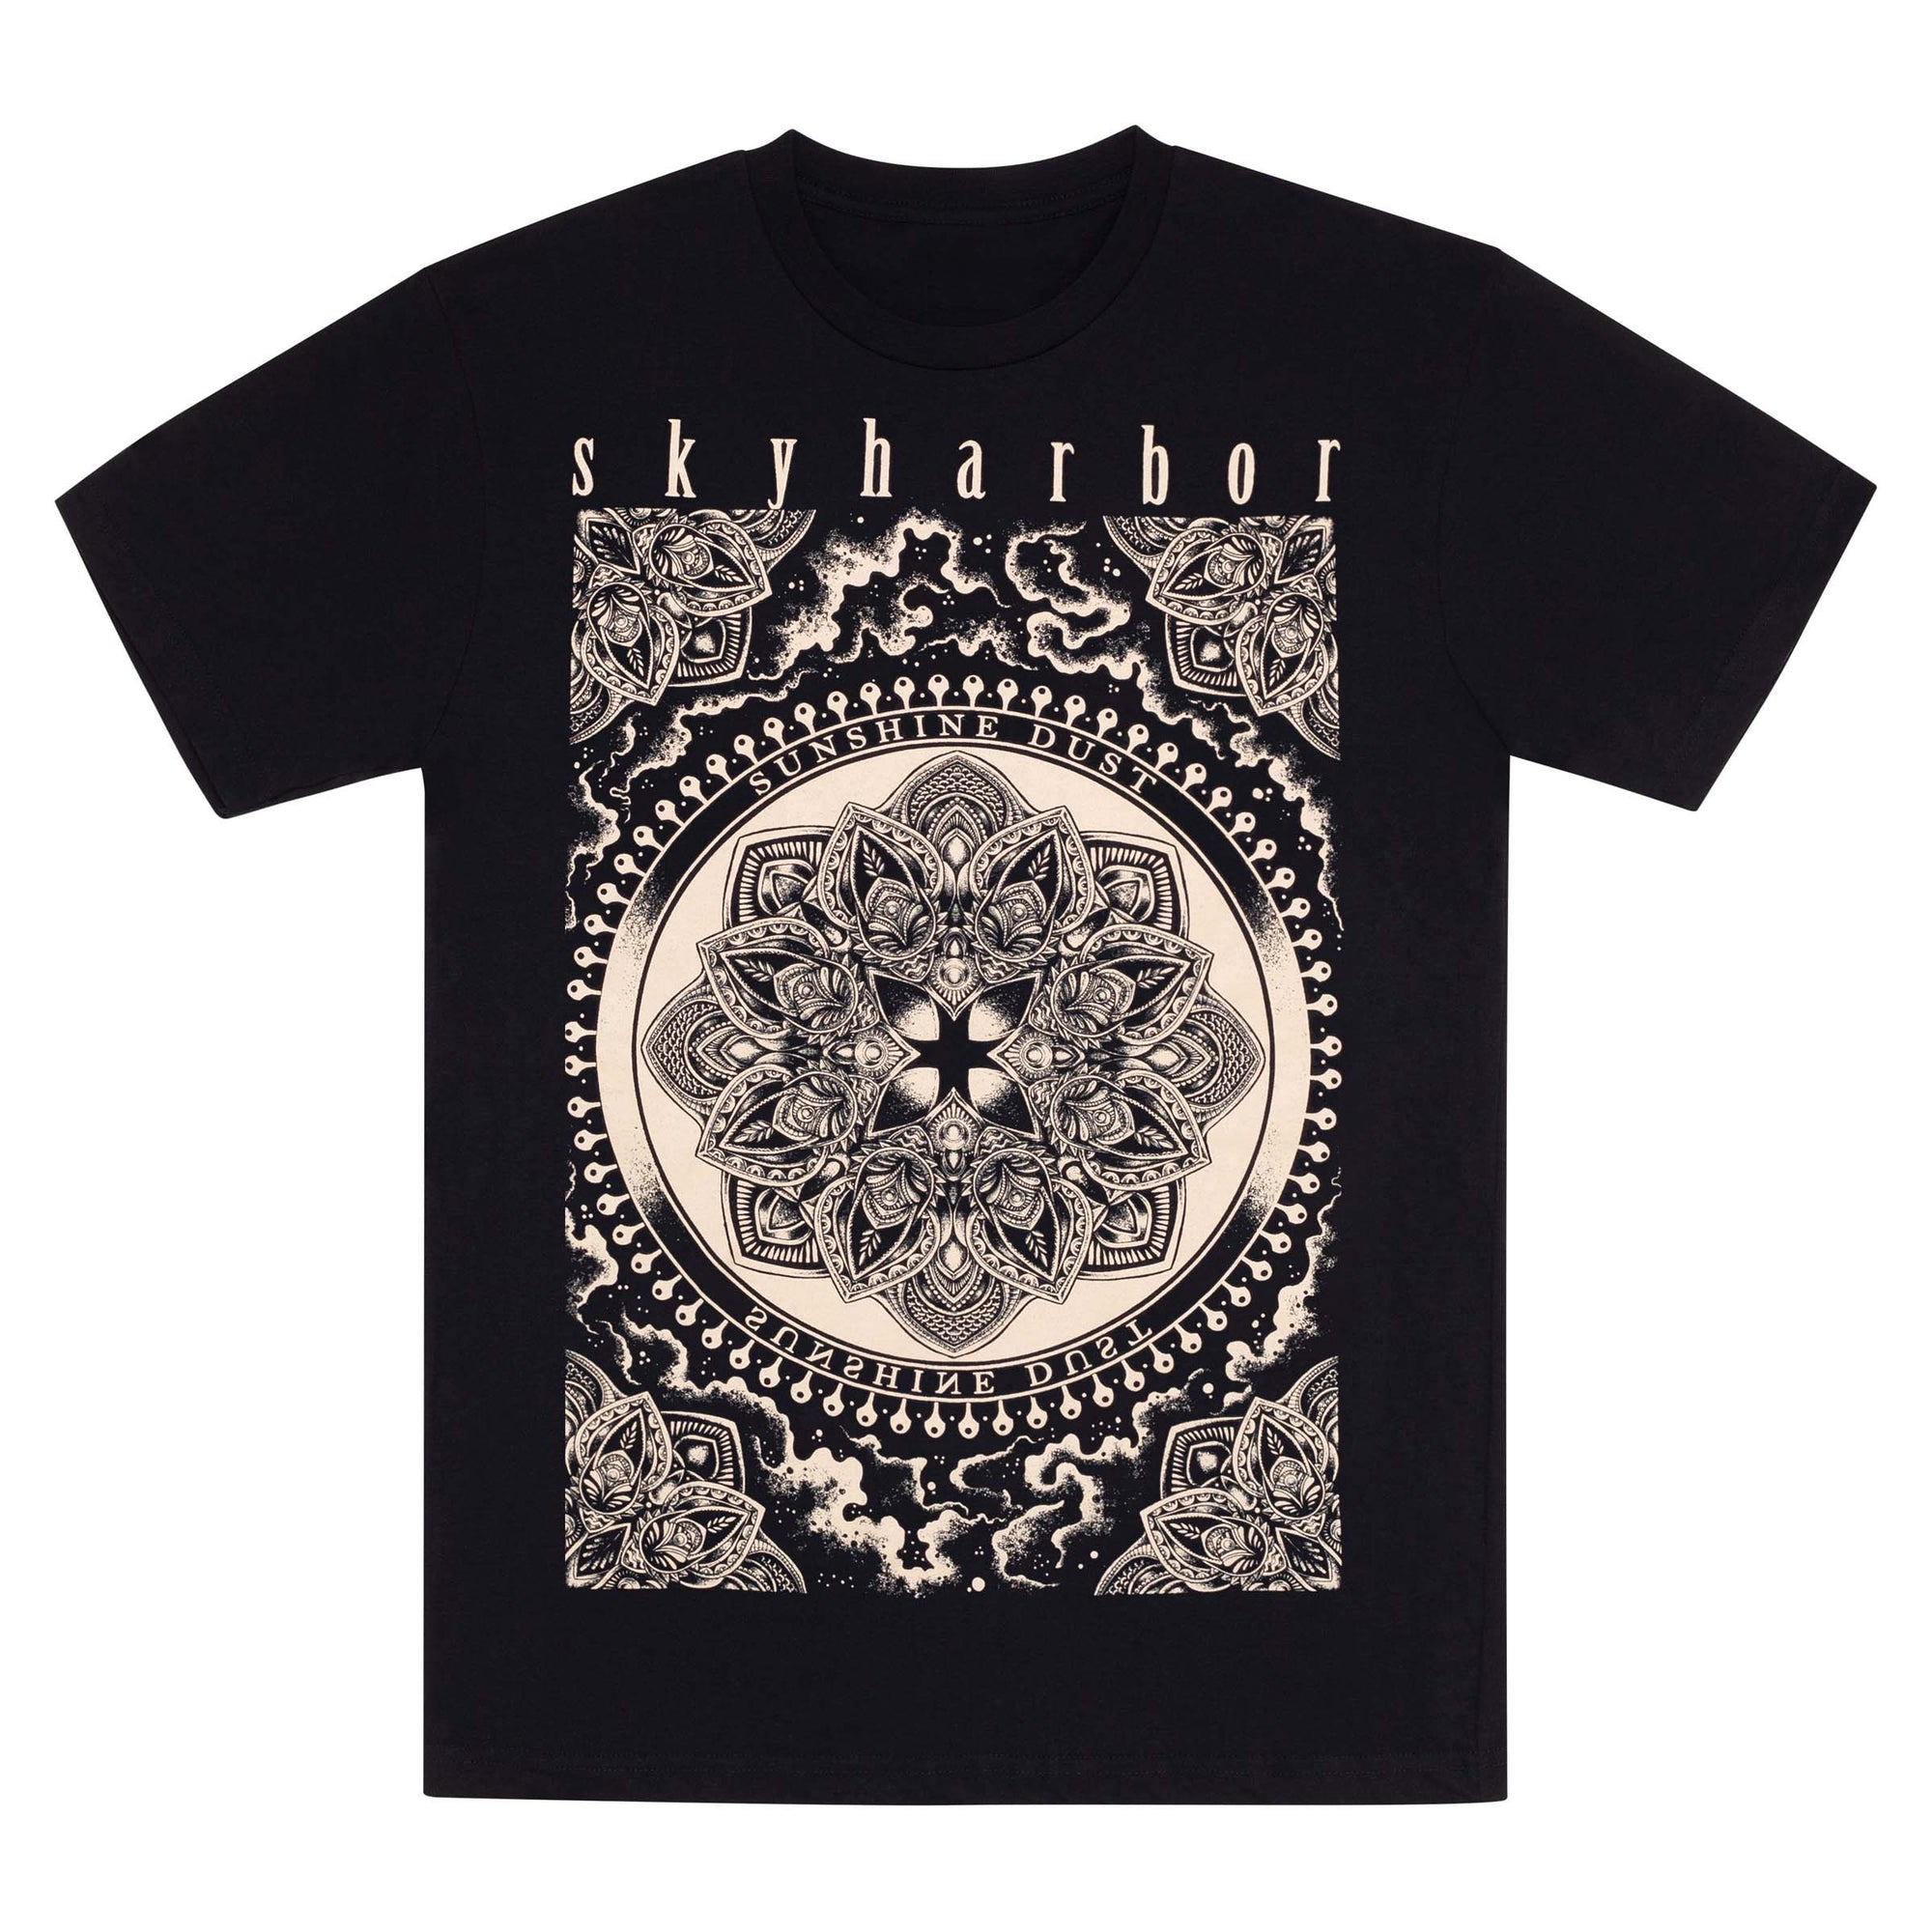 SKYHARBOR // SUNSHINE DUST BLACK T-SHIRT - Wild Thing Records